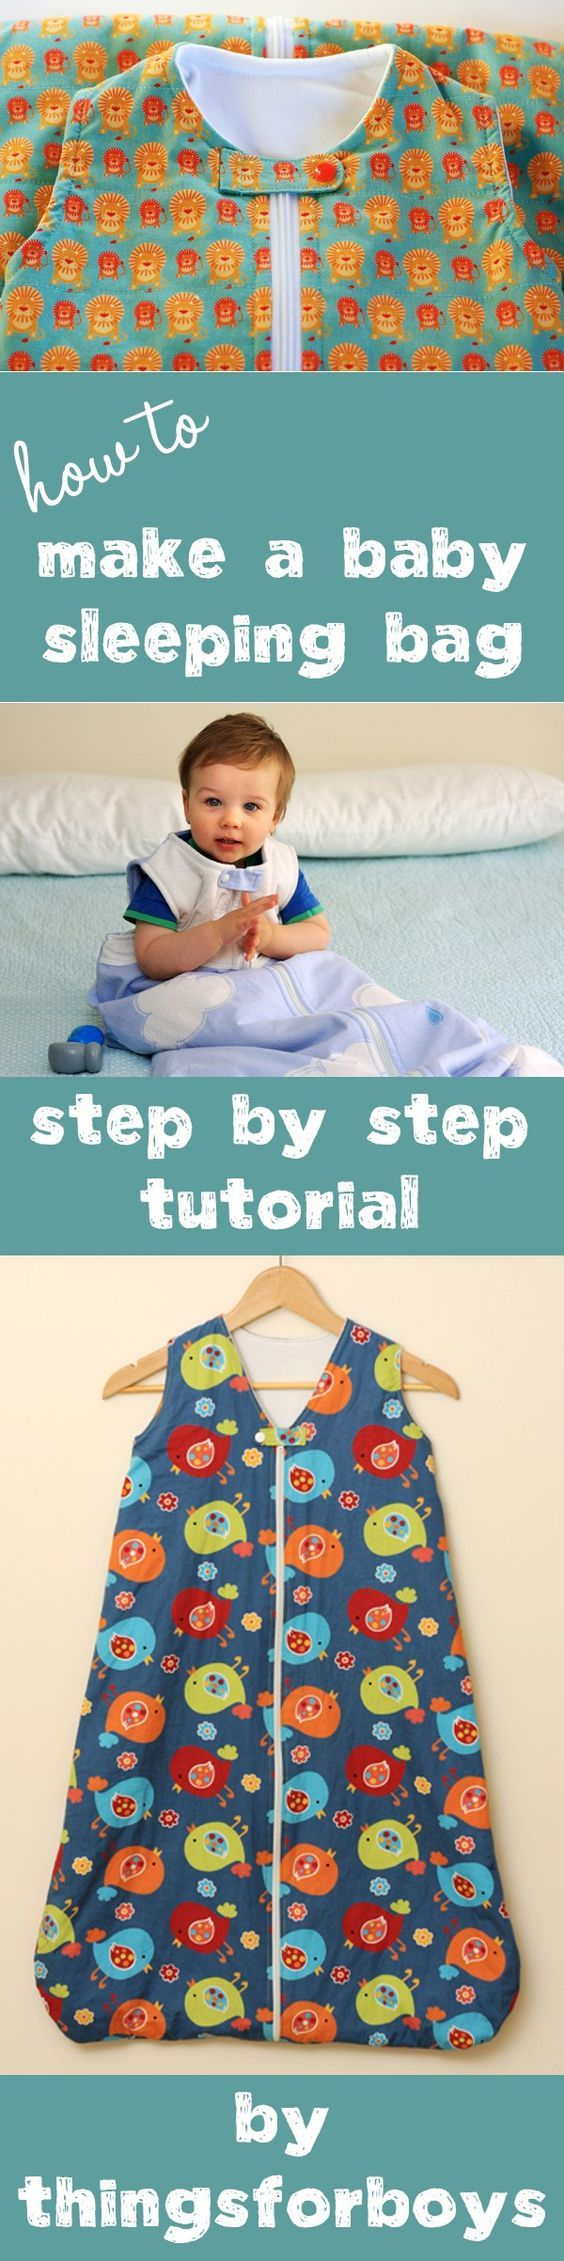 How to make a baby sleep sack - step by step tutorial